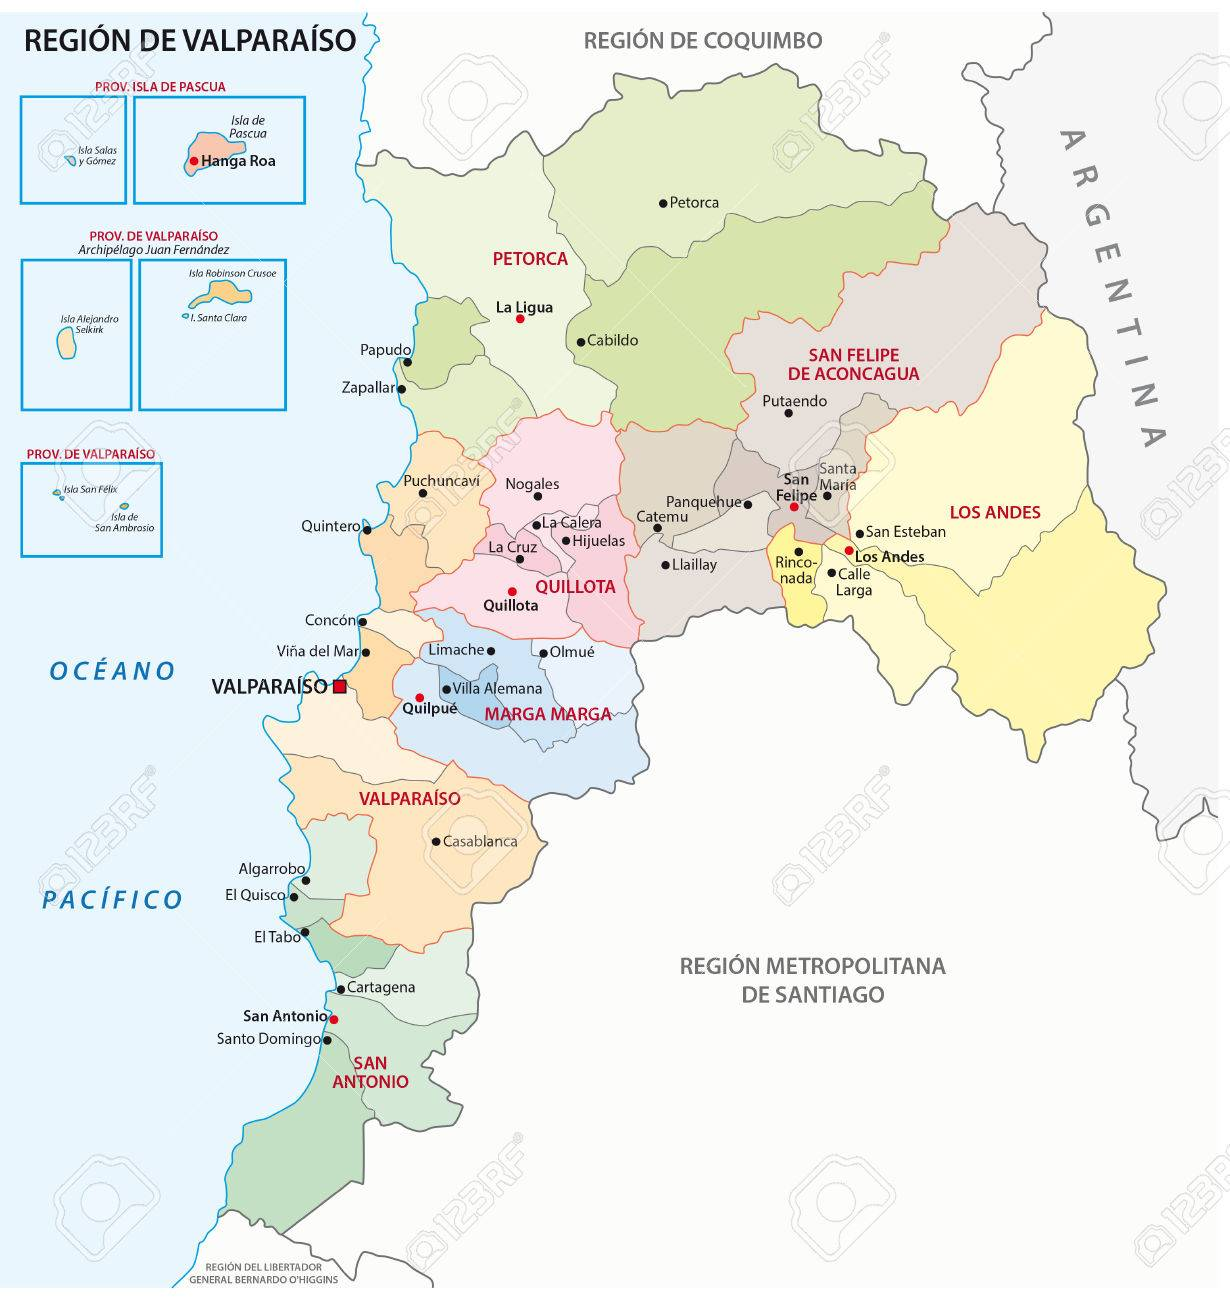 Valparaso Chile Administrative Region Map Royalty Free Cliparts - Chile regions map